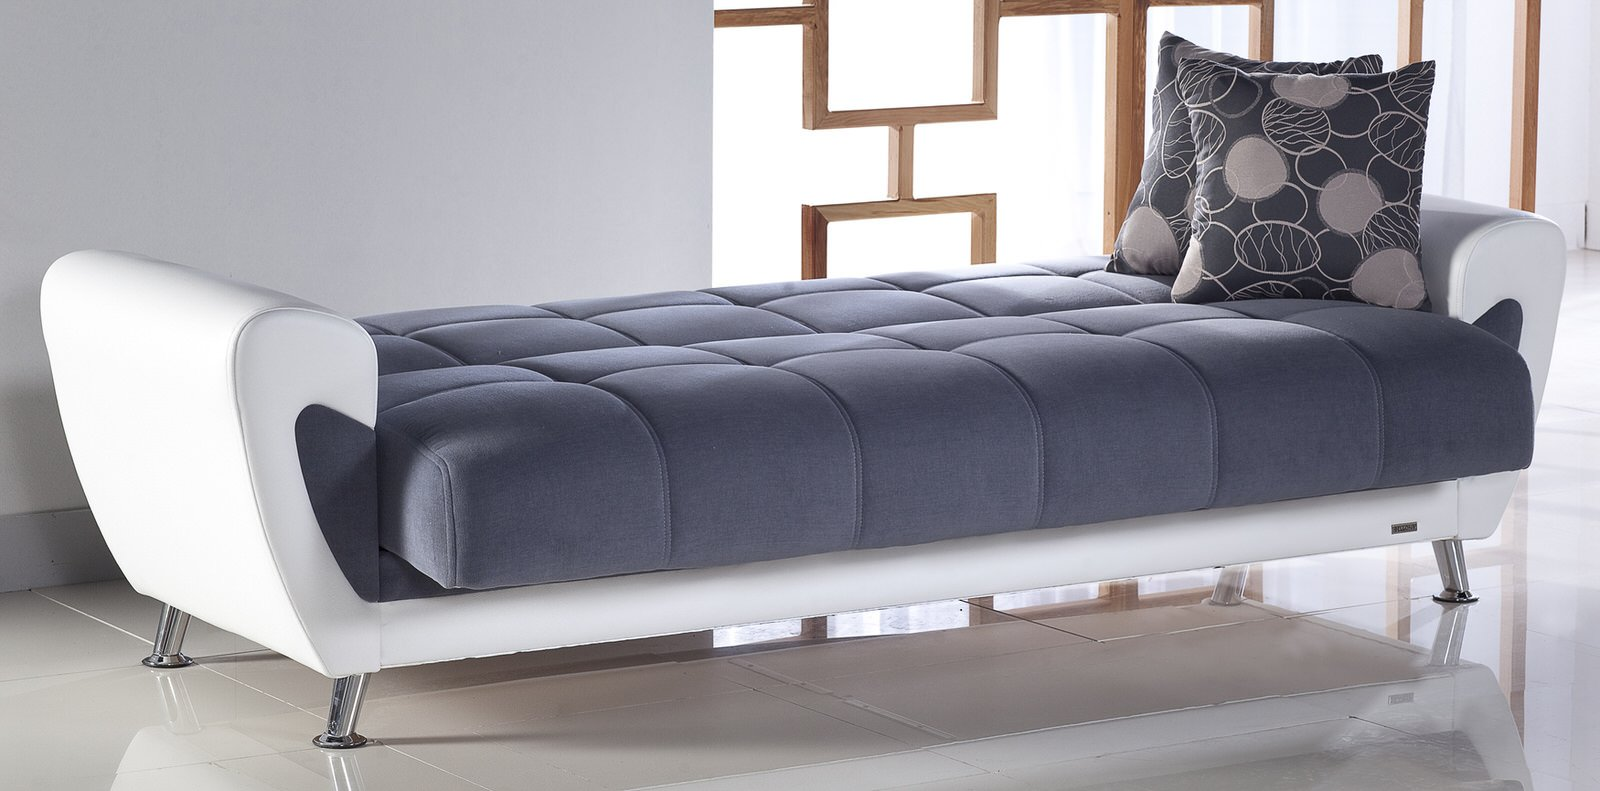 Duru cozy gray convertible sofa bed by sunset Marvelous bedroom designs for small rooms